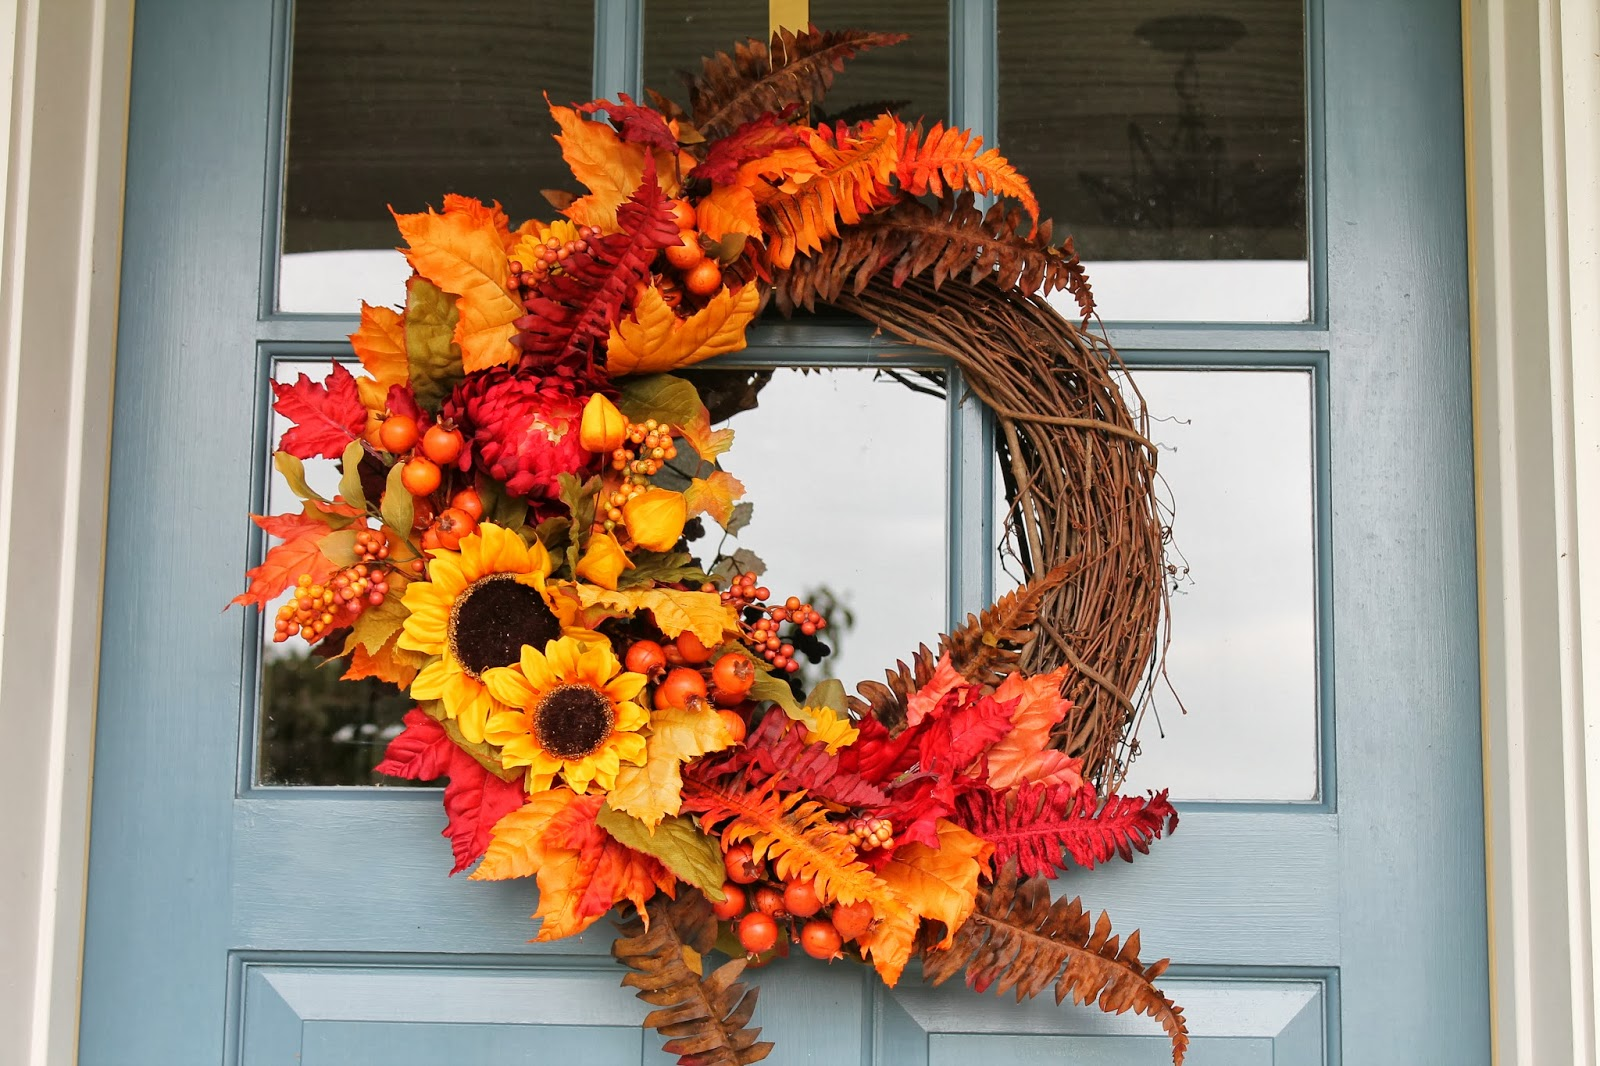 Elizabeth co fall wreath making frenzy Making wreaths